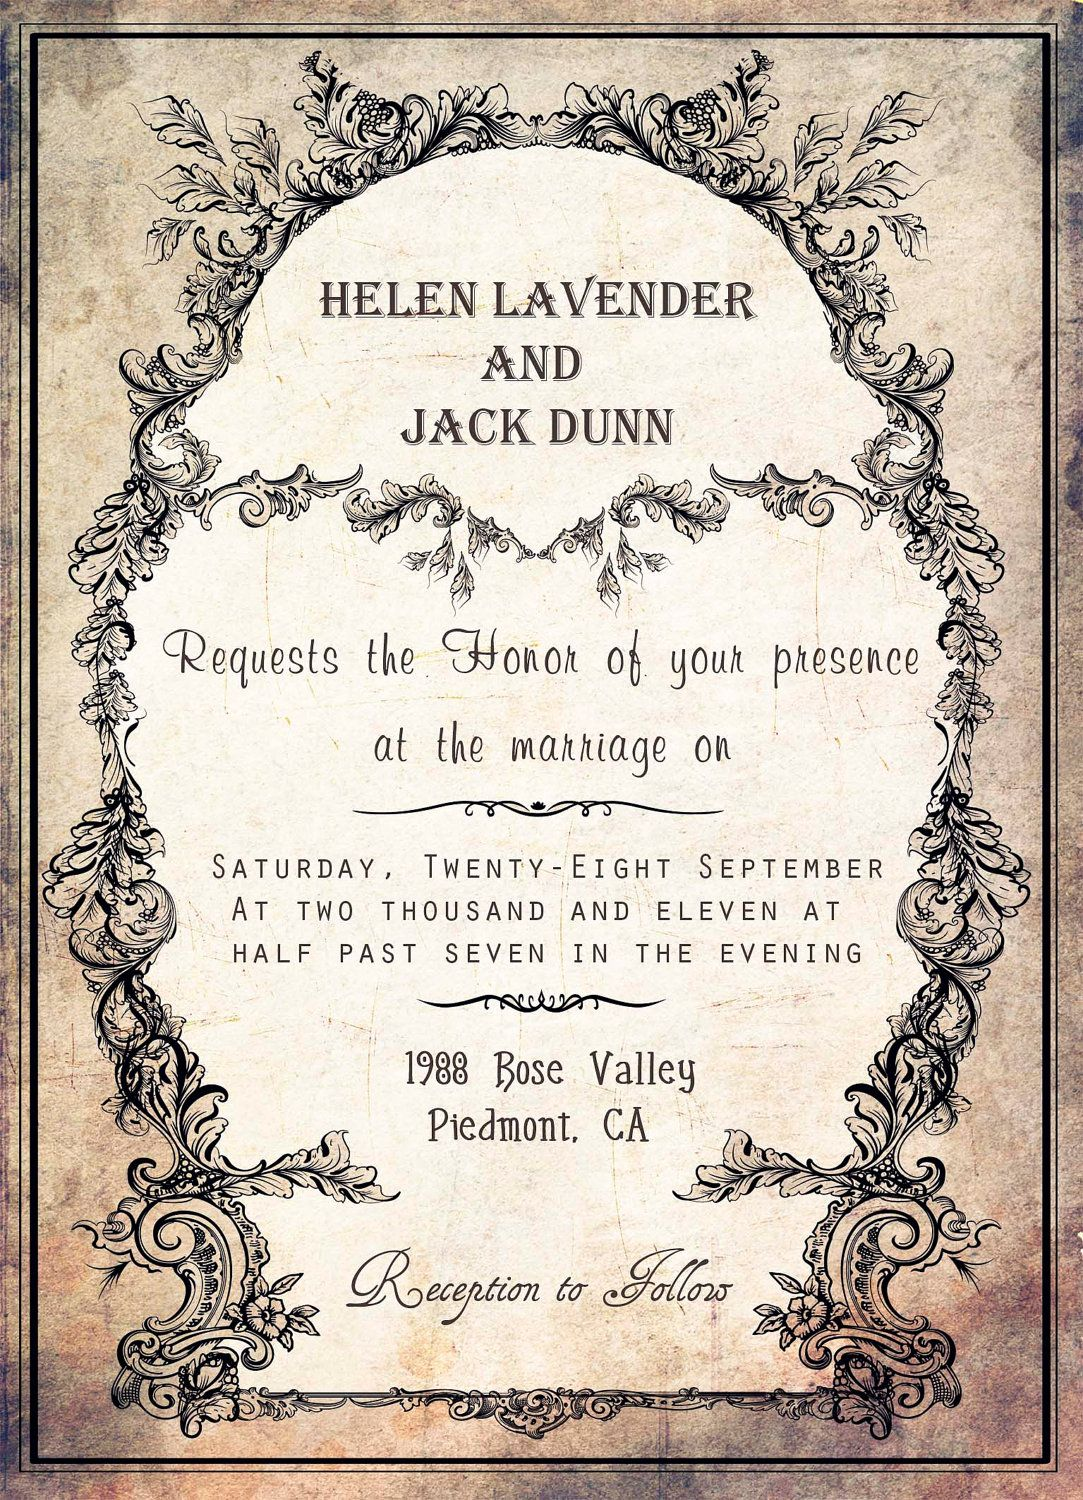 Invitation Wording Christian | Vintage wedding invitation ...